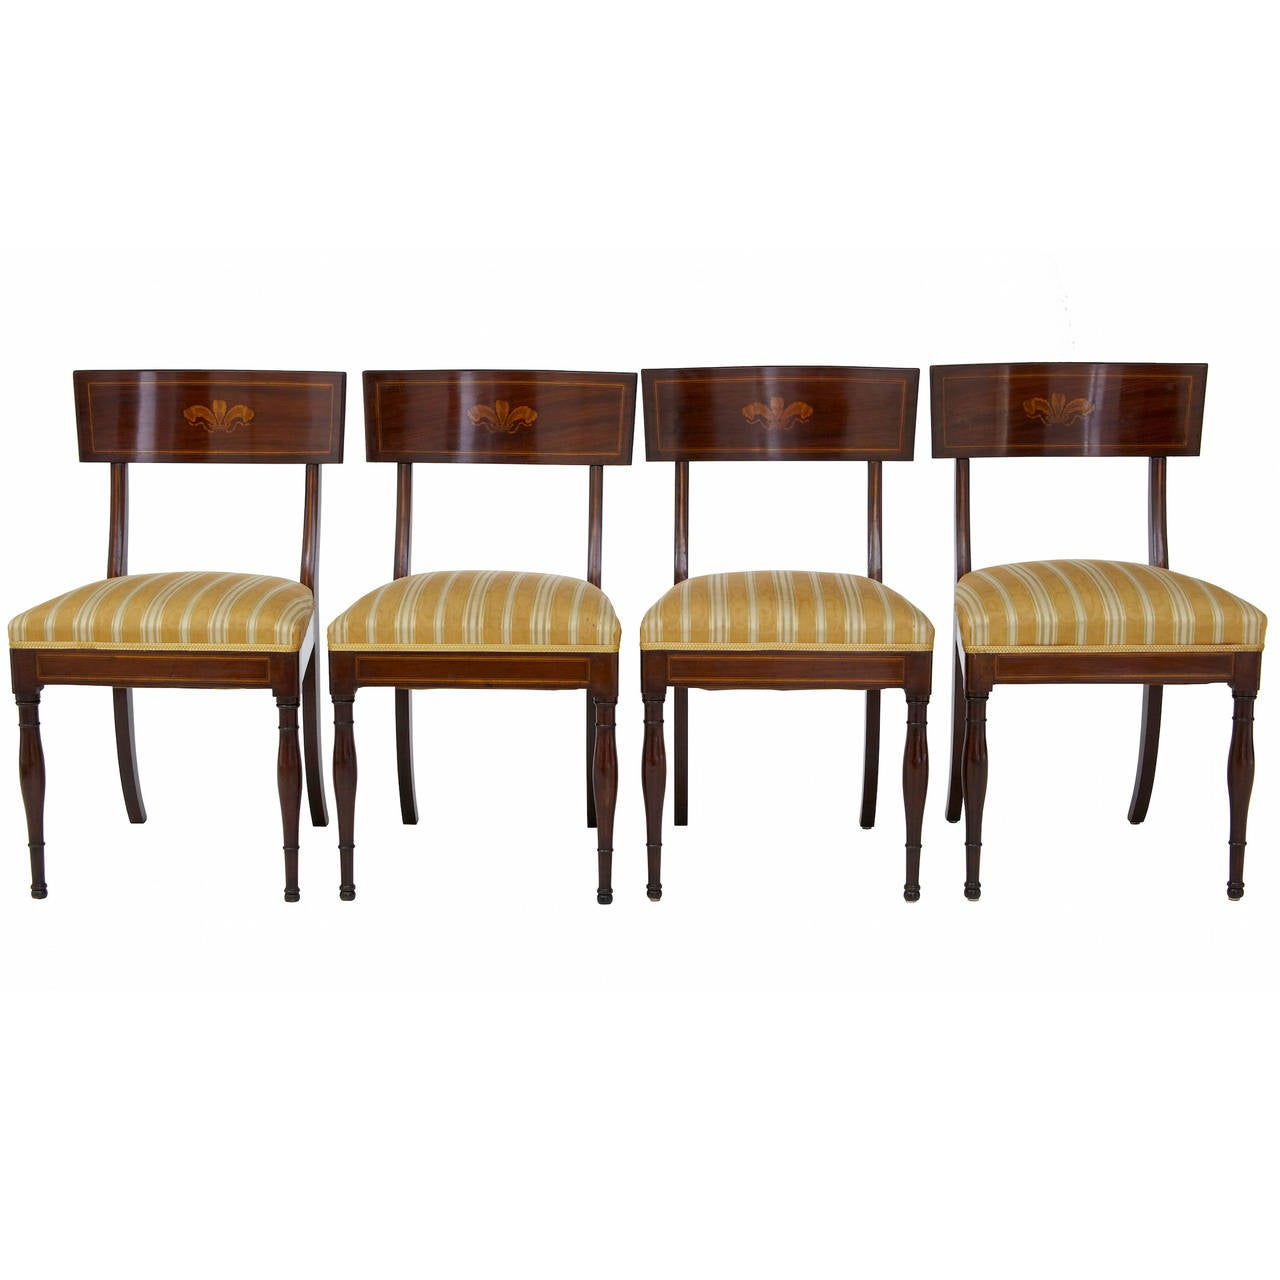 Small set of four william iv mahogany dining chairs at 1stdibs for Small dining sets for 4